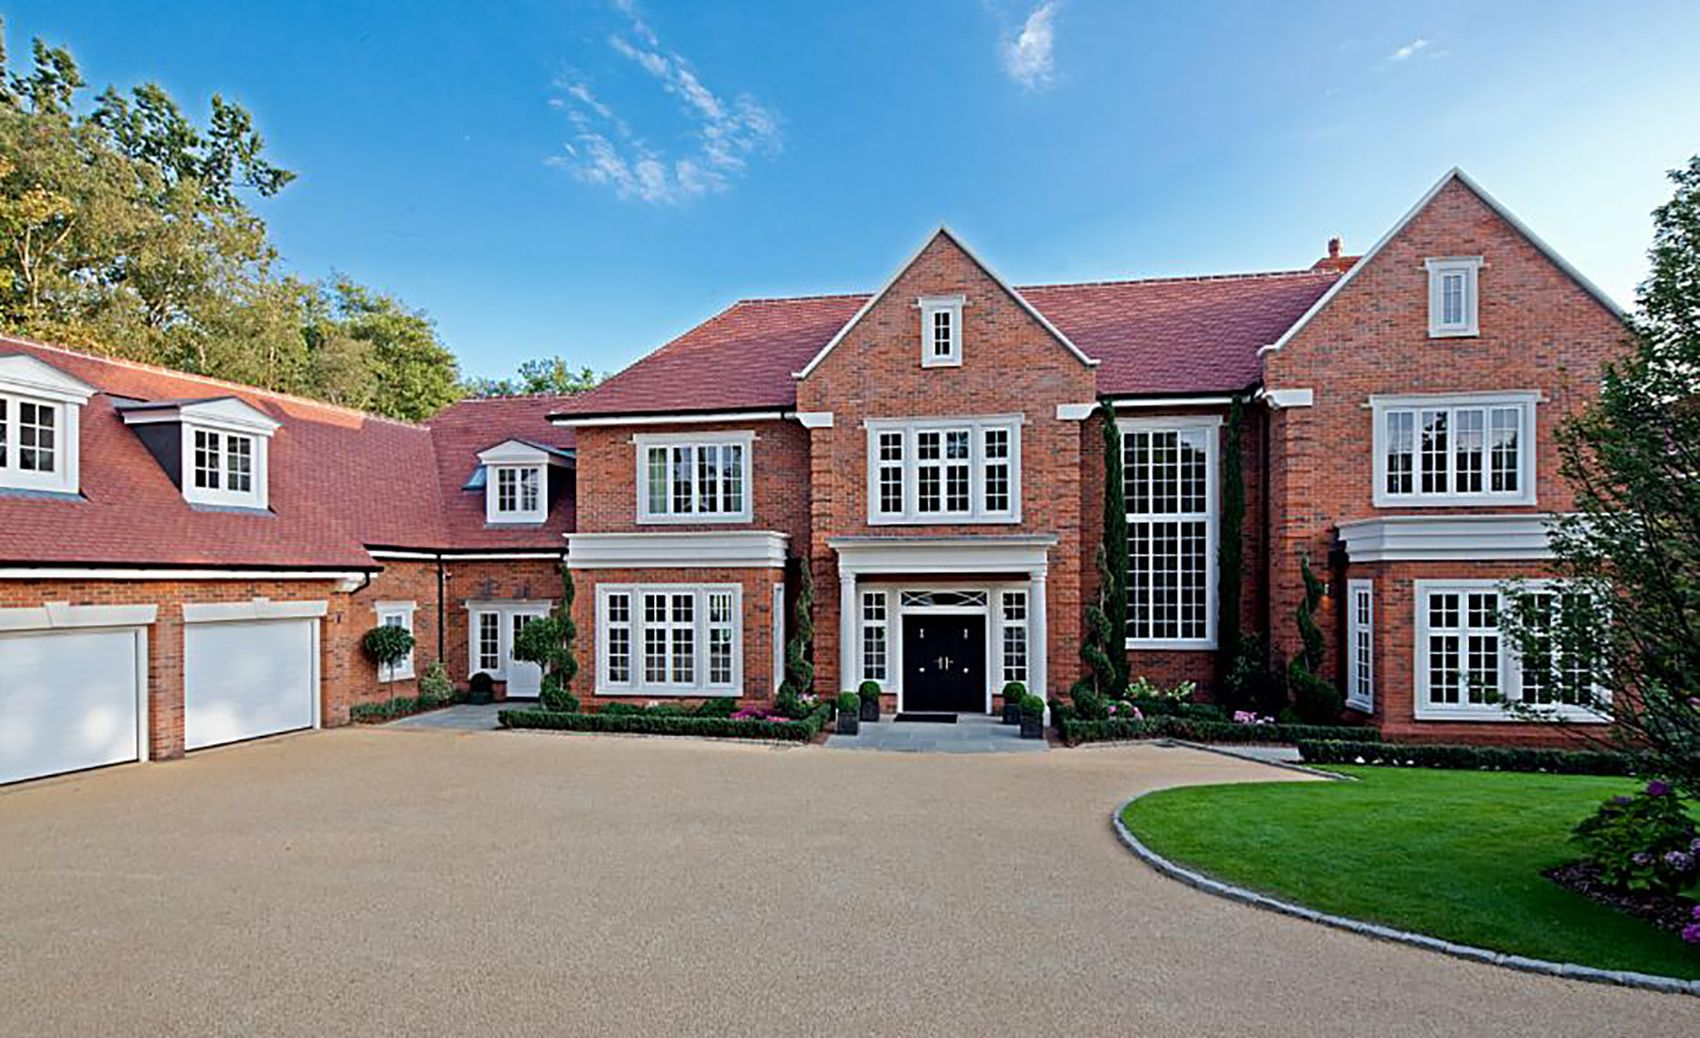 Our Wentworth Estate Architectural Design For Millgate Homes Included 10 000sqft Of Accommodation A House Exterior Dream House Exterior Residential Architect